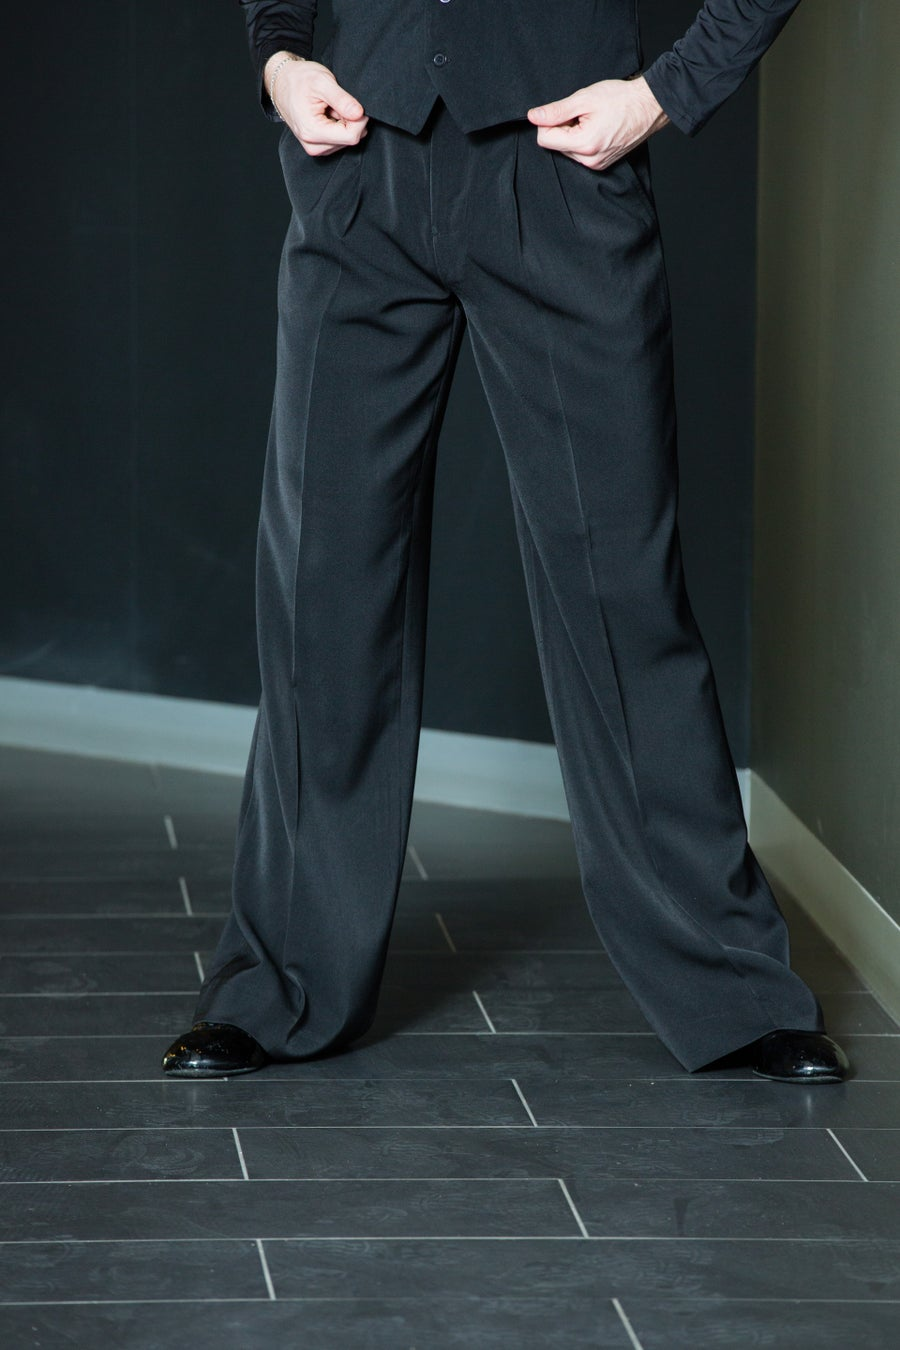 Image of B9435 Tailor Pants SALE Dancewear latin ballroom